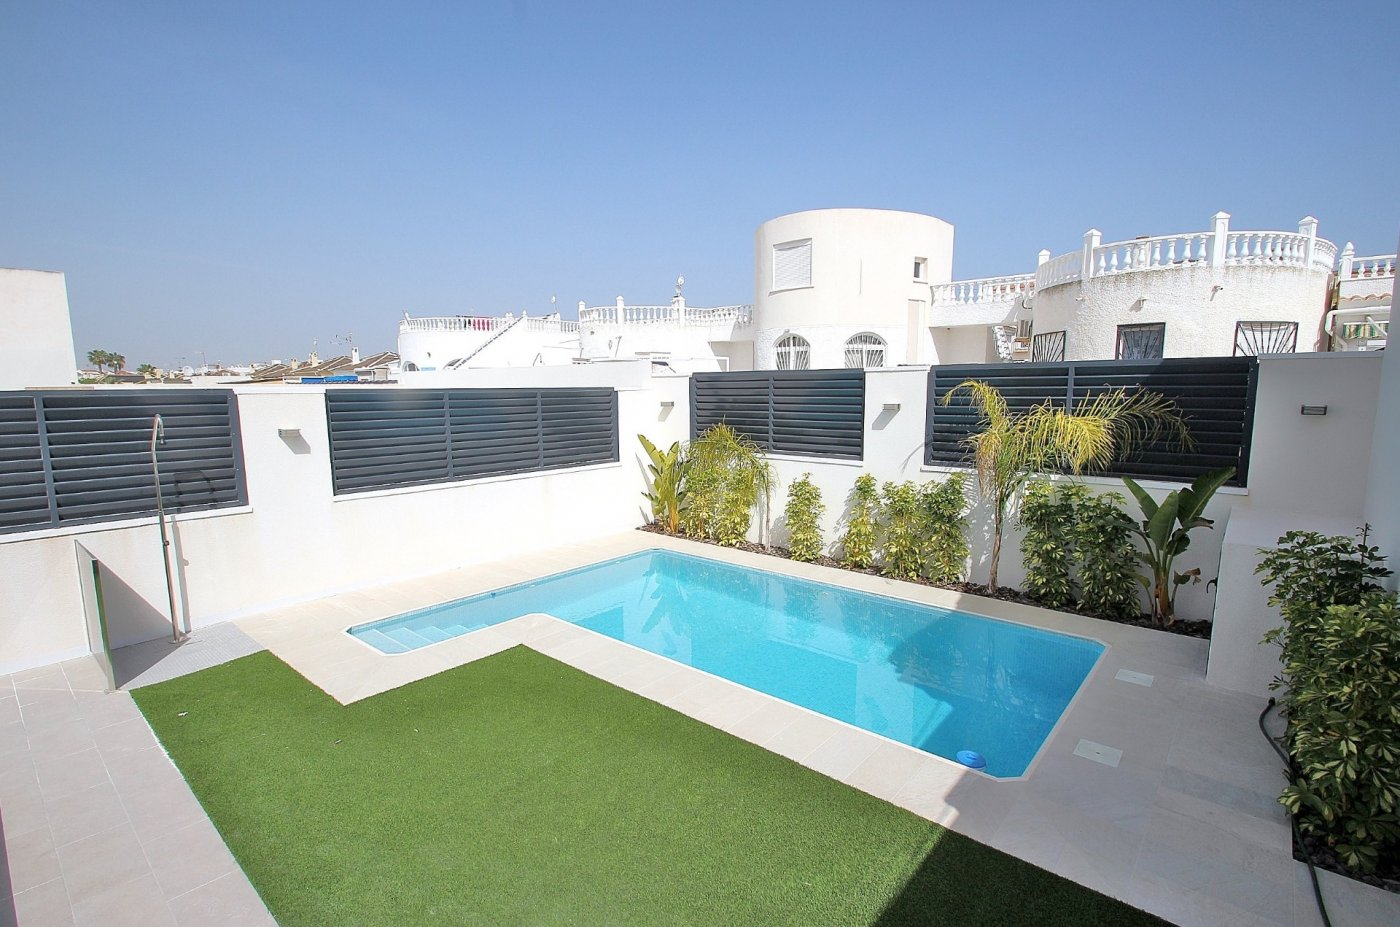 DETACHED VILLA OF NEW WORK IN LA SIESTA - TORREVIEJA (La siesta)